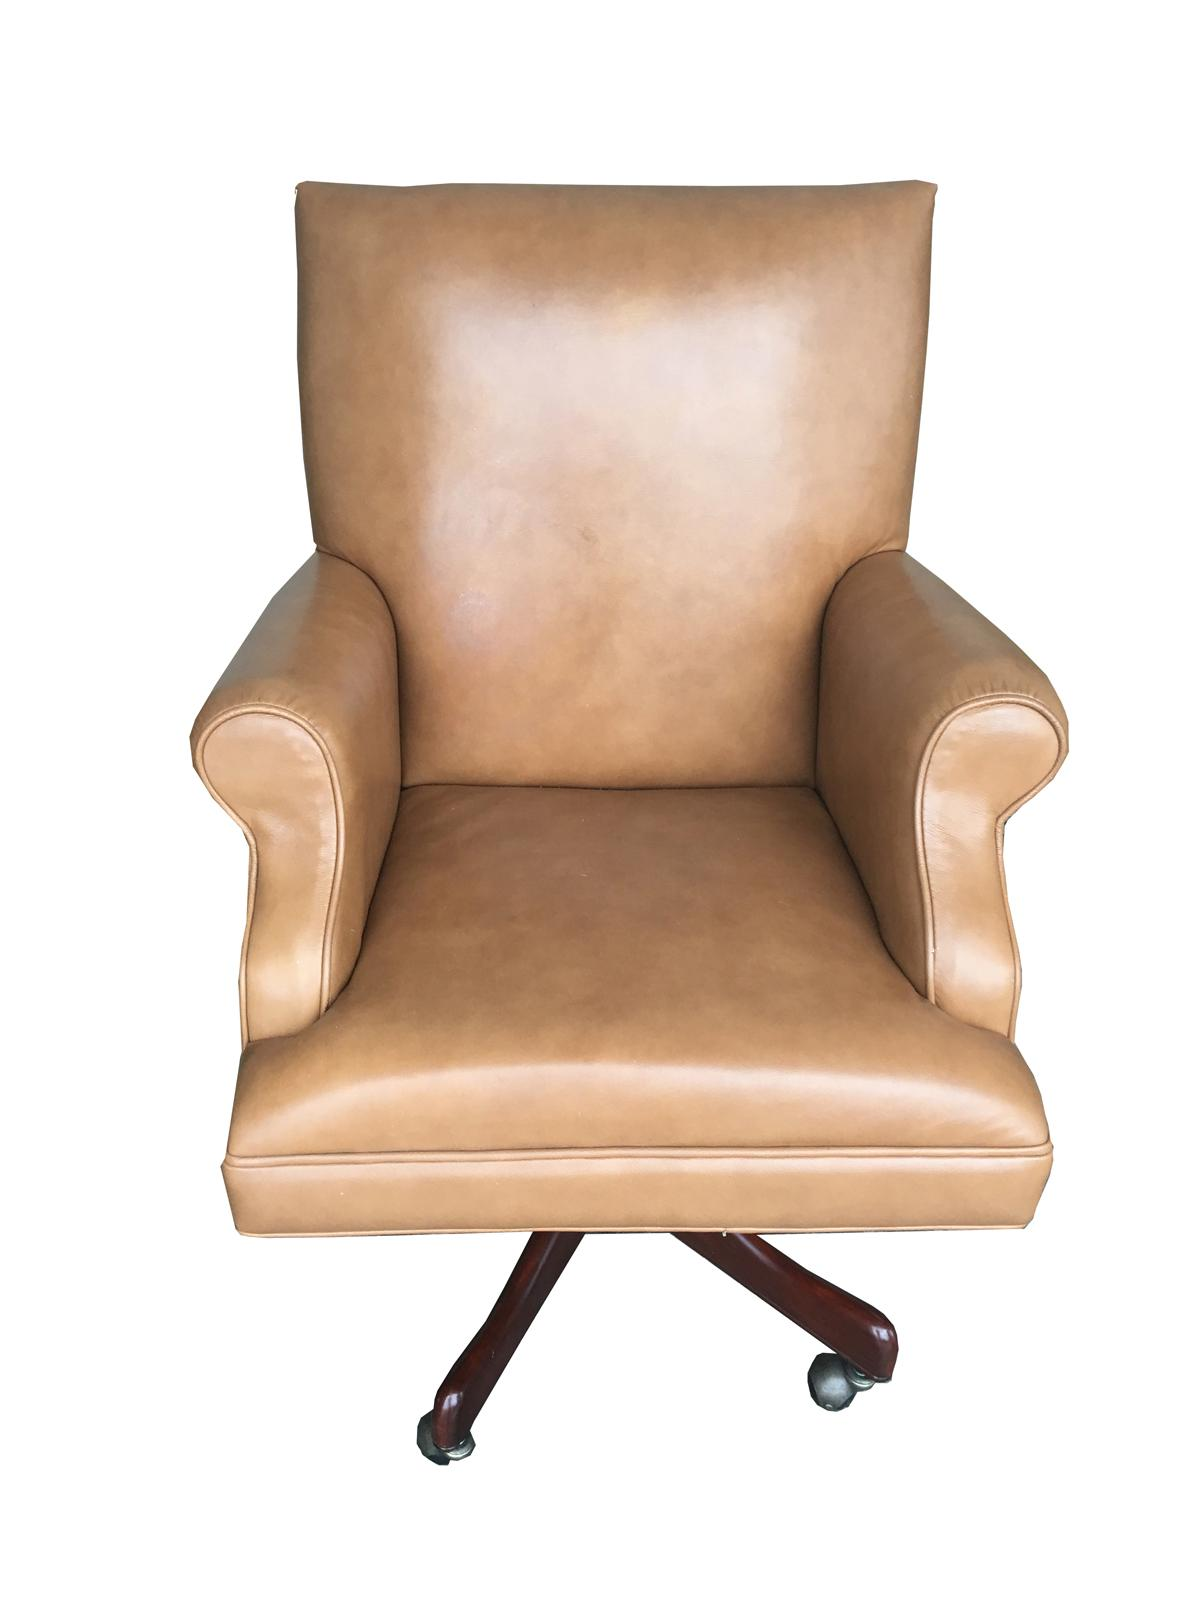 Tan Office Chair Vintage Mid Century Modern Tan Leather Chesterfield Style